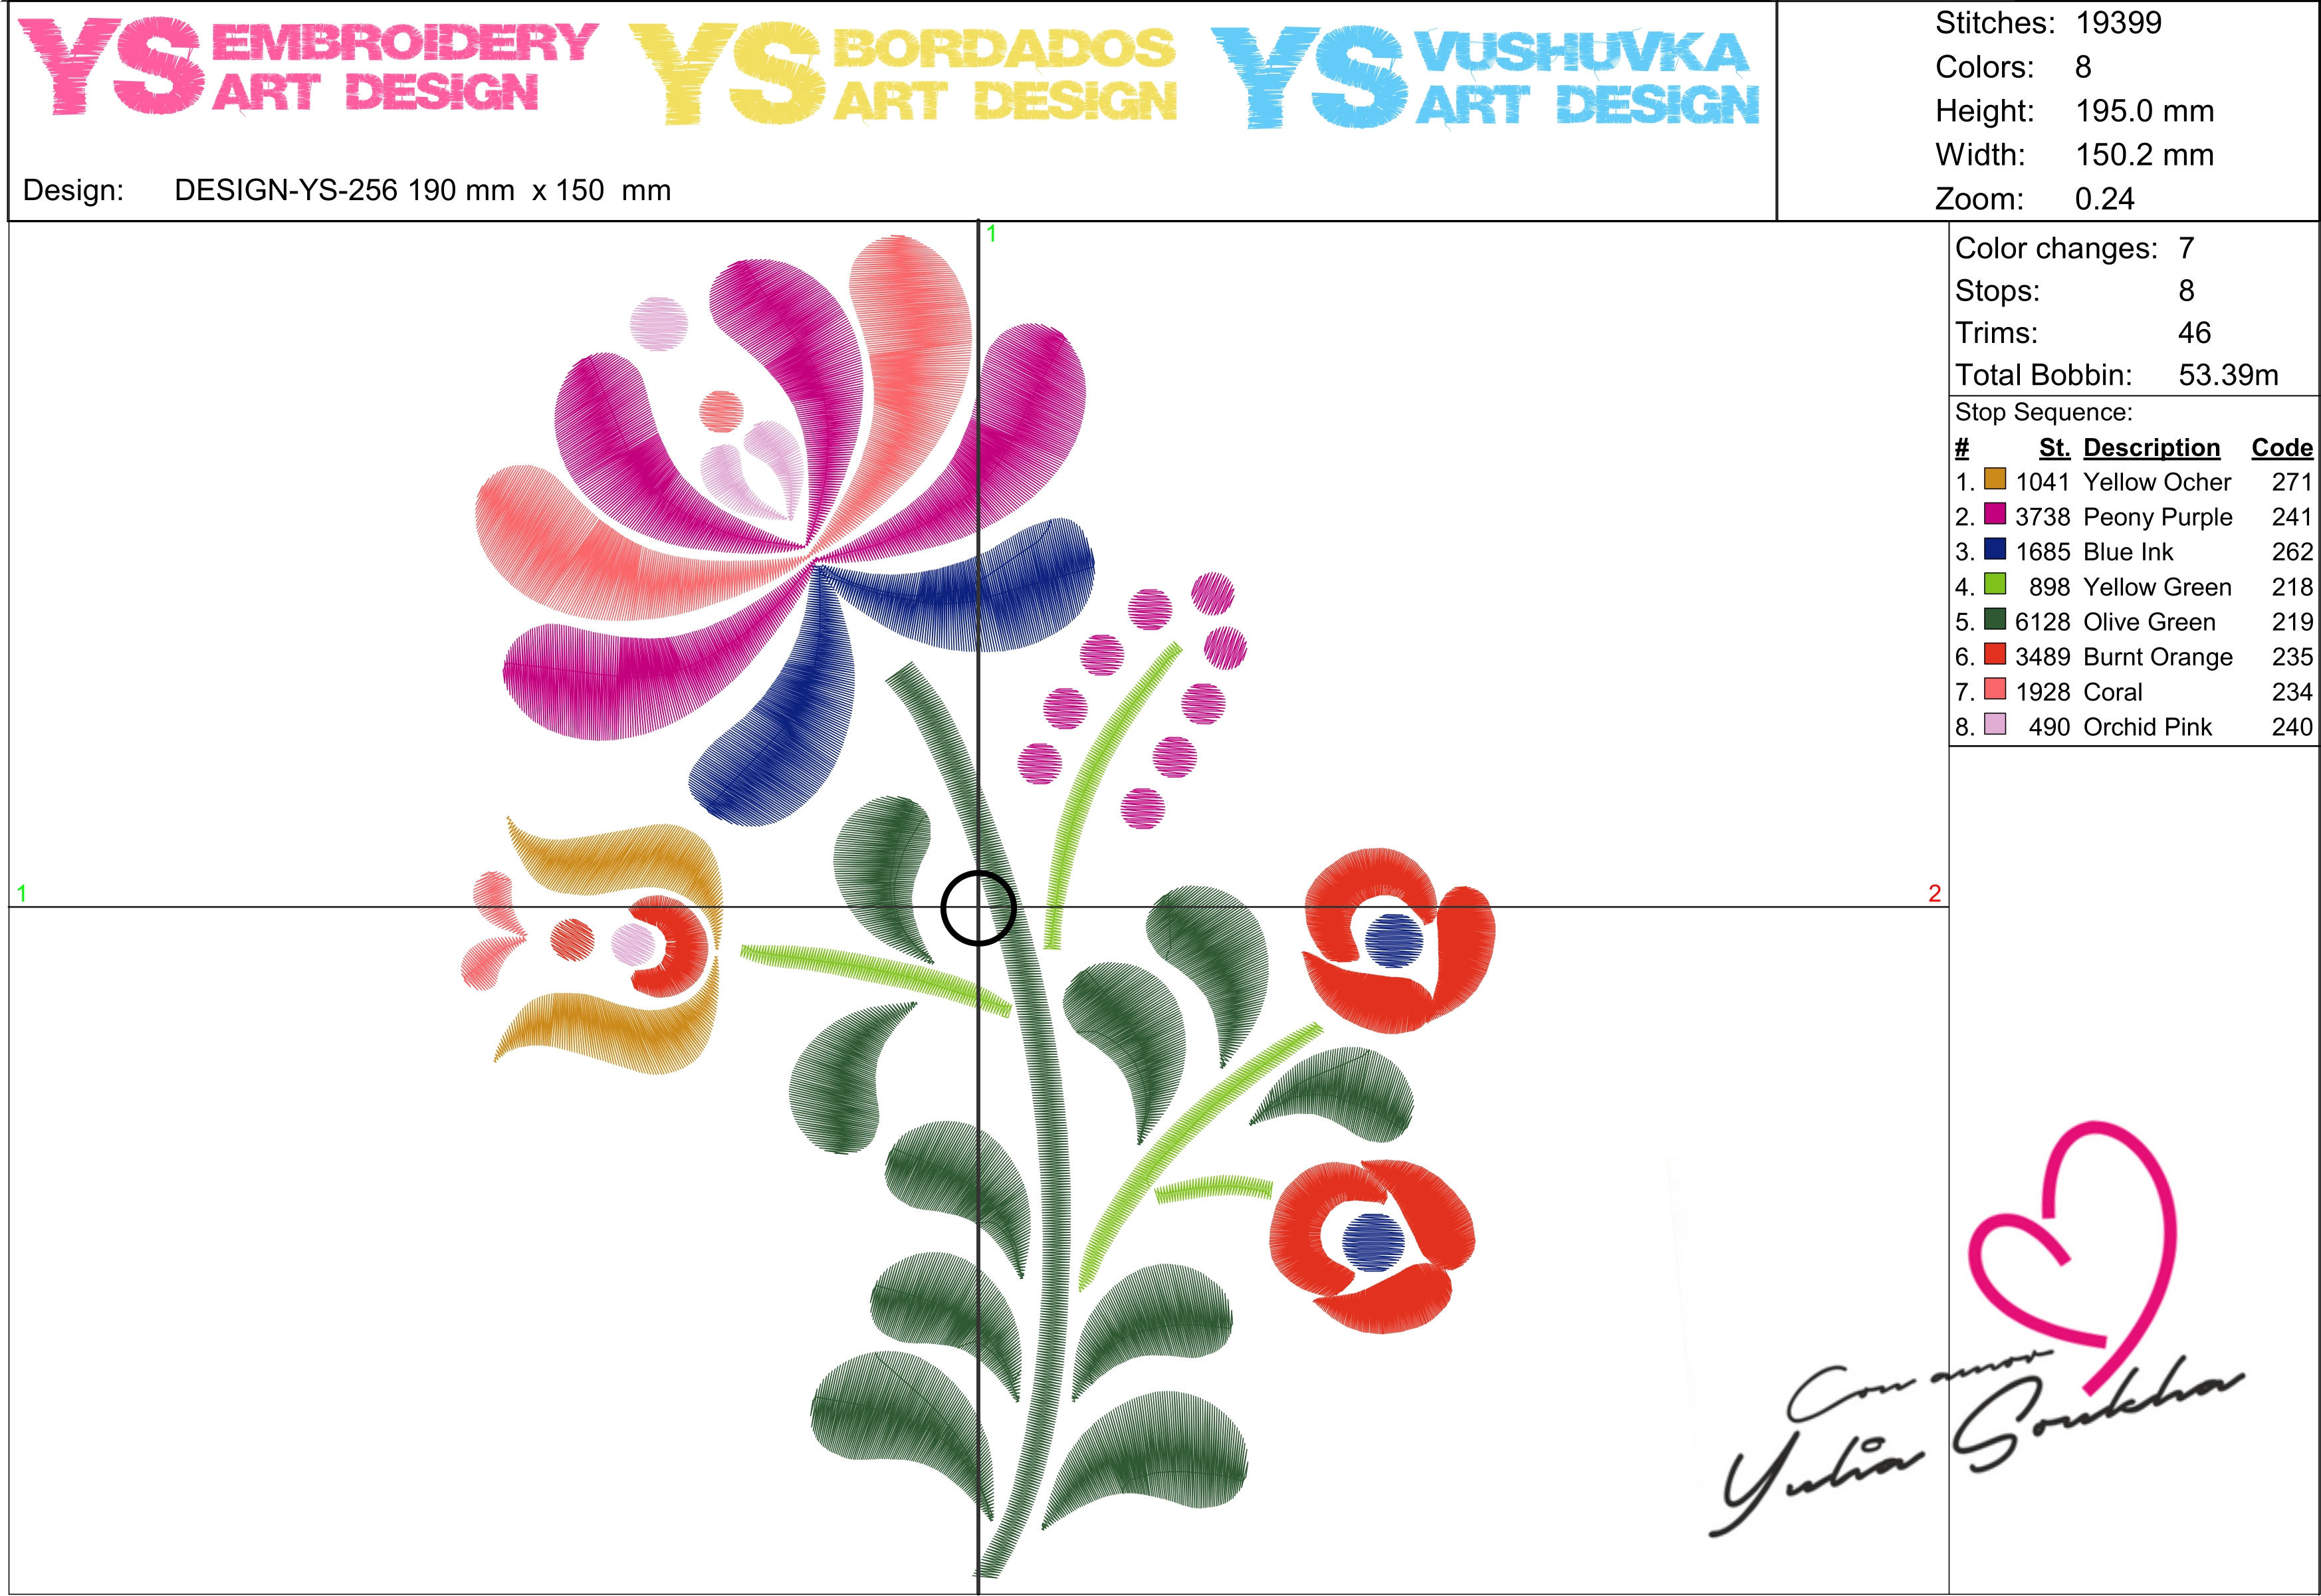 Flower JAZ embroidery design, 195 x 150.2 mm (7.6 'x 6') embroidery matrix, different sizes embroidery design Embroidery matrix, Mexican design example image 3